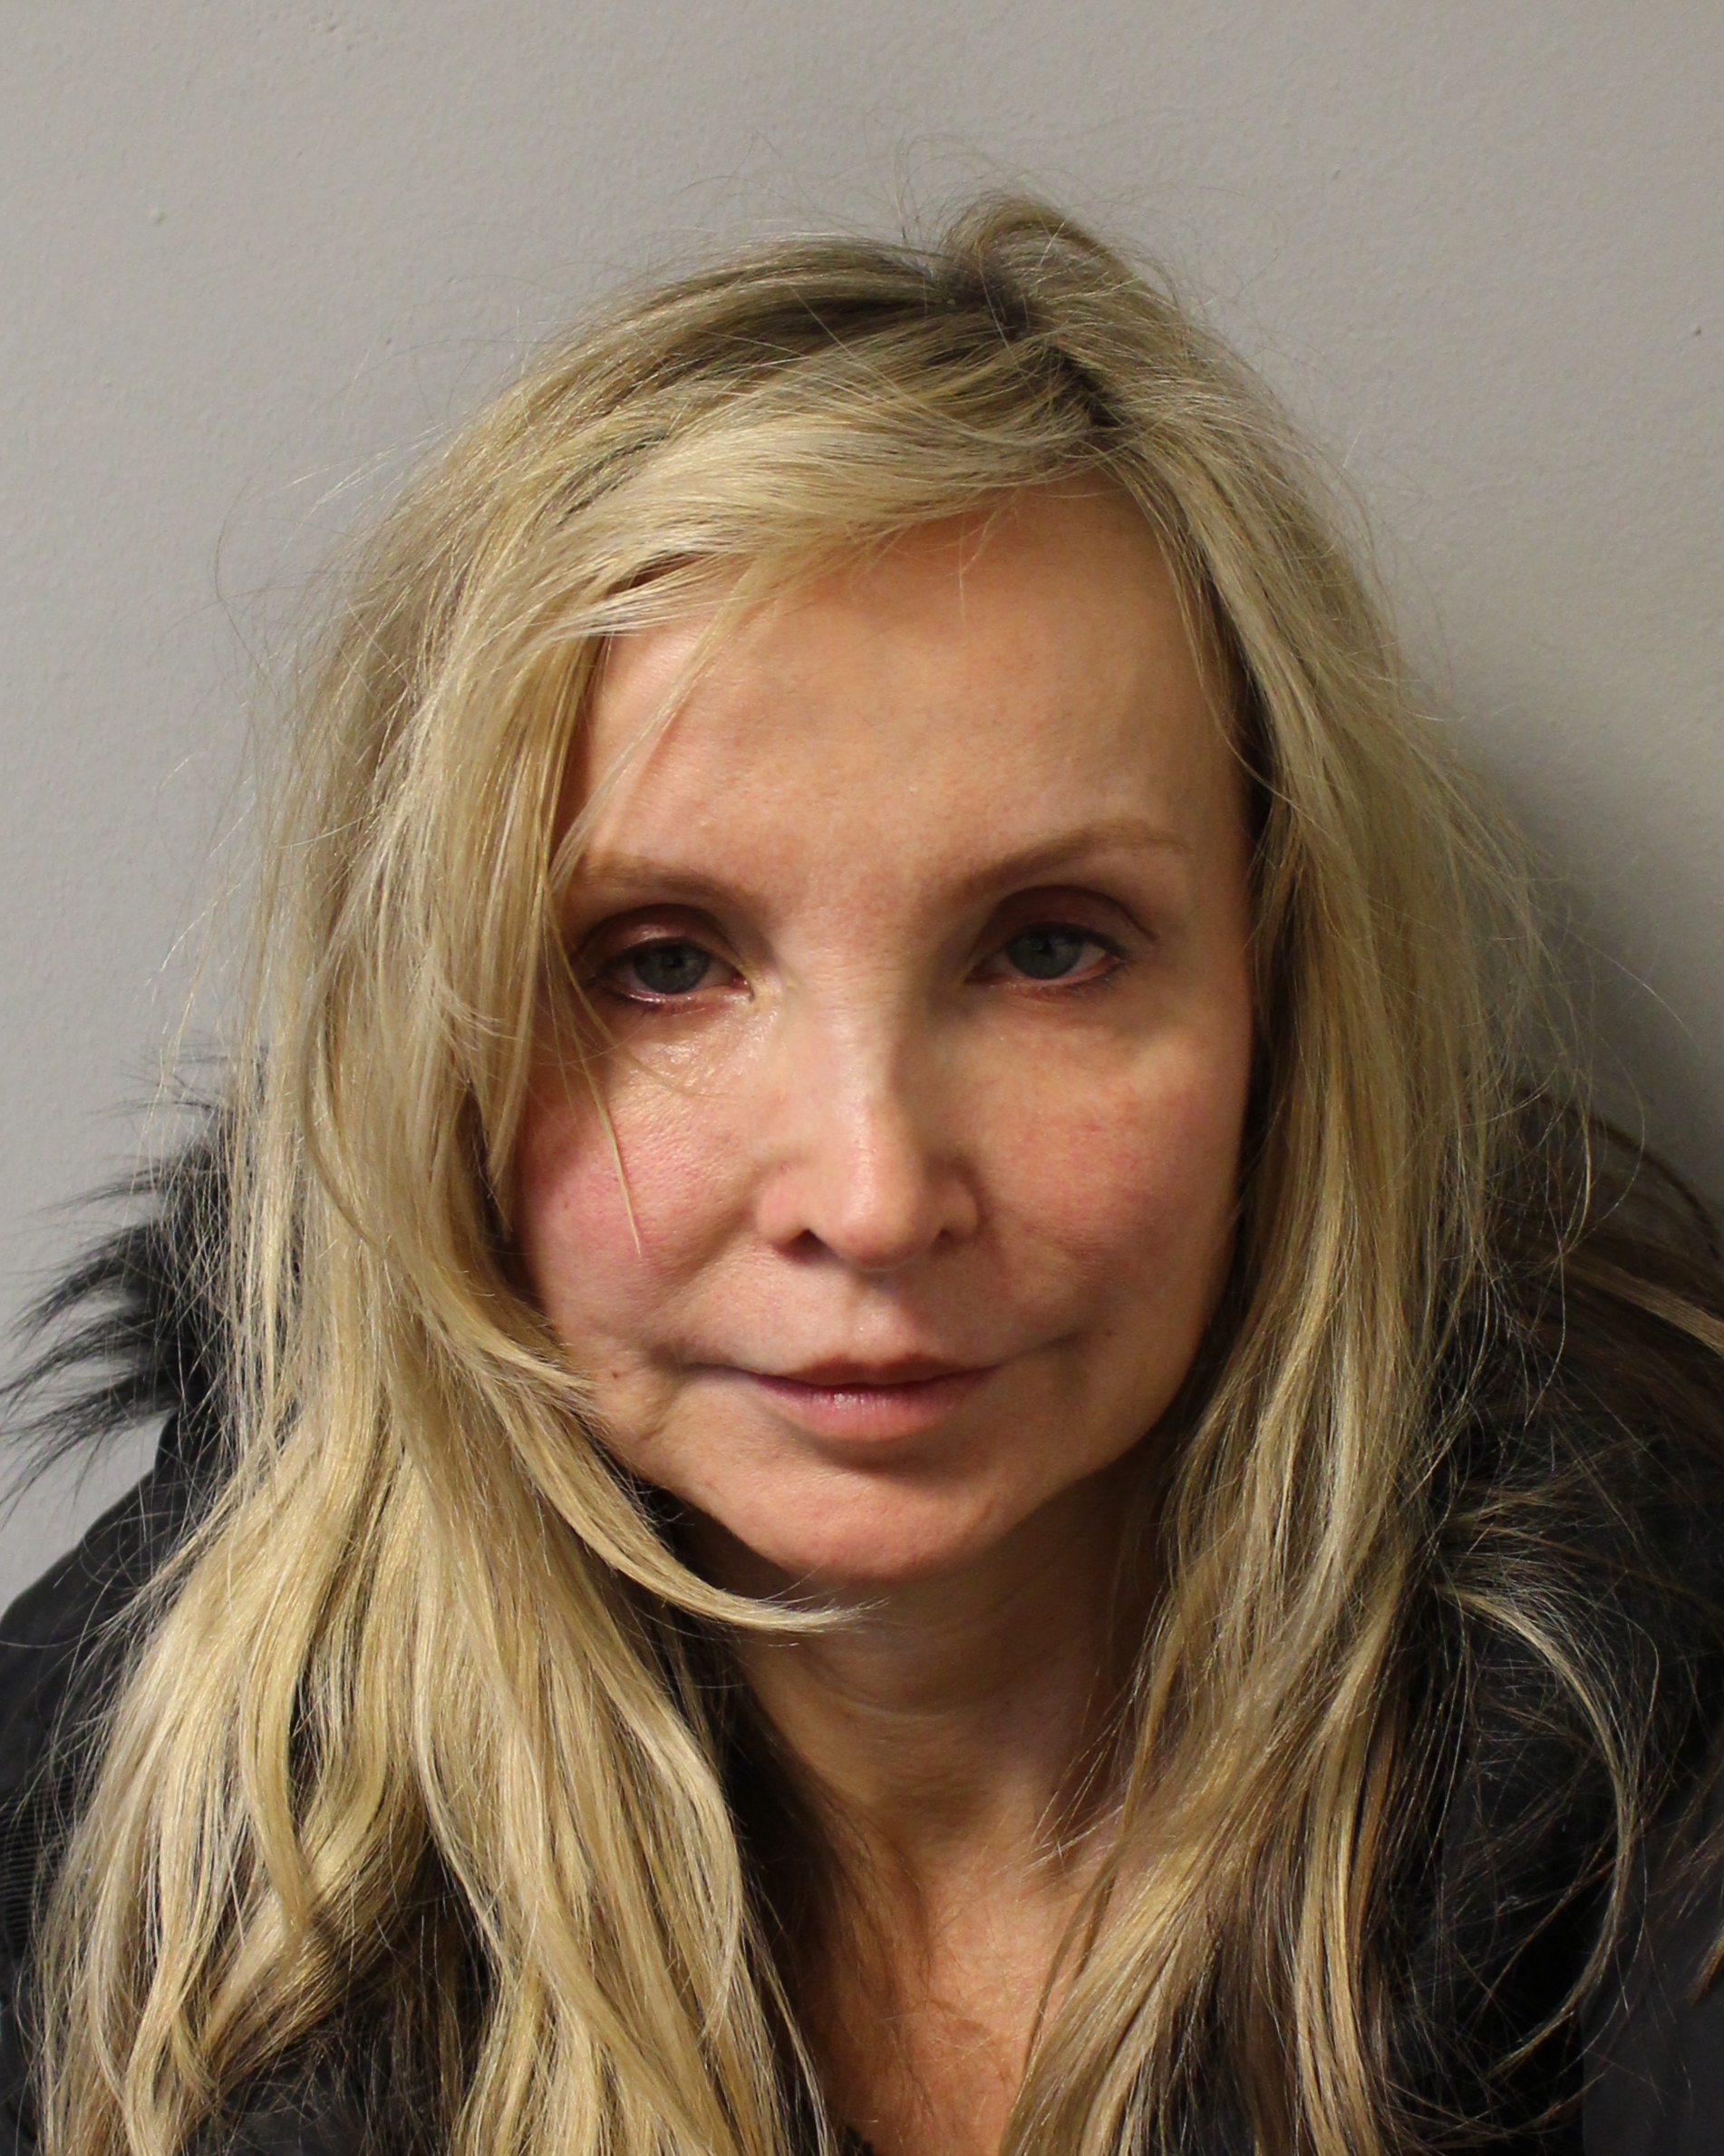 A mugshot of Jane Clapton released by the Metropolitan Police